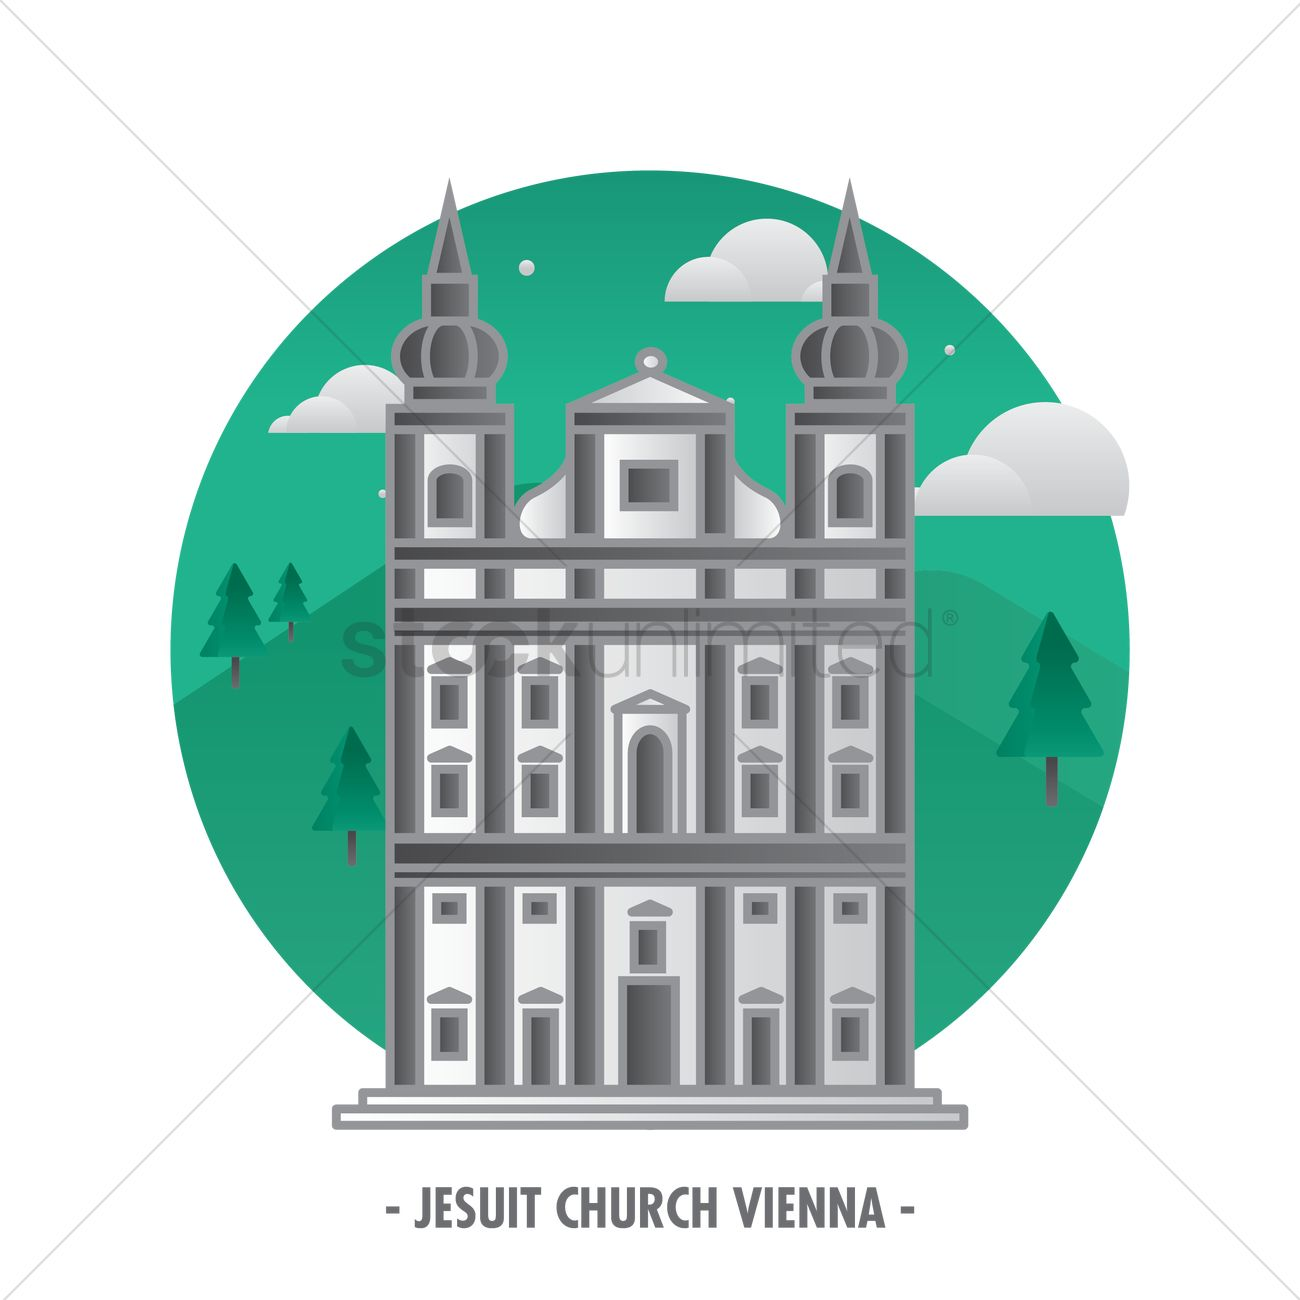 Jesuit church vienna Vector Image.